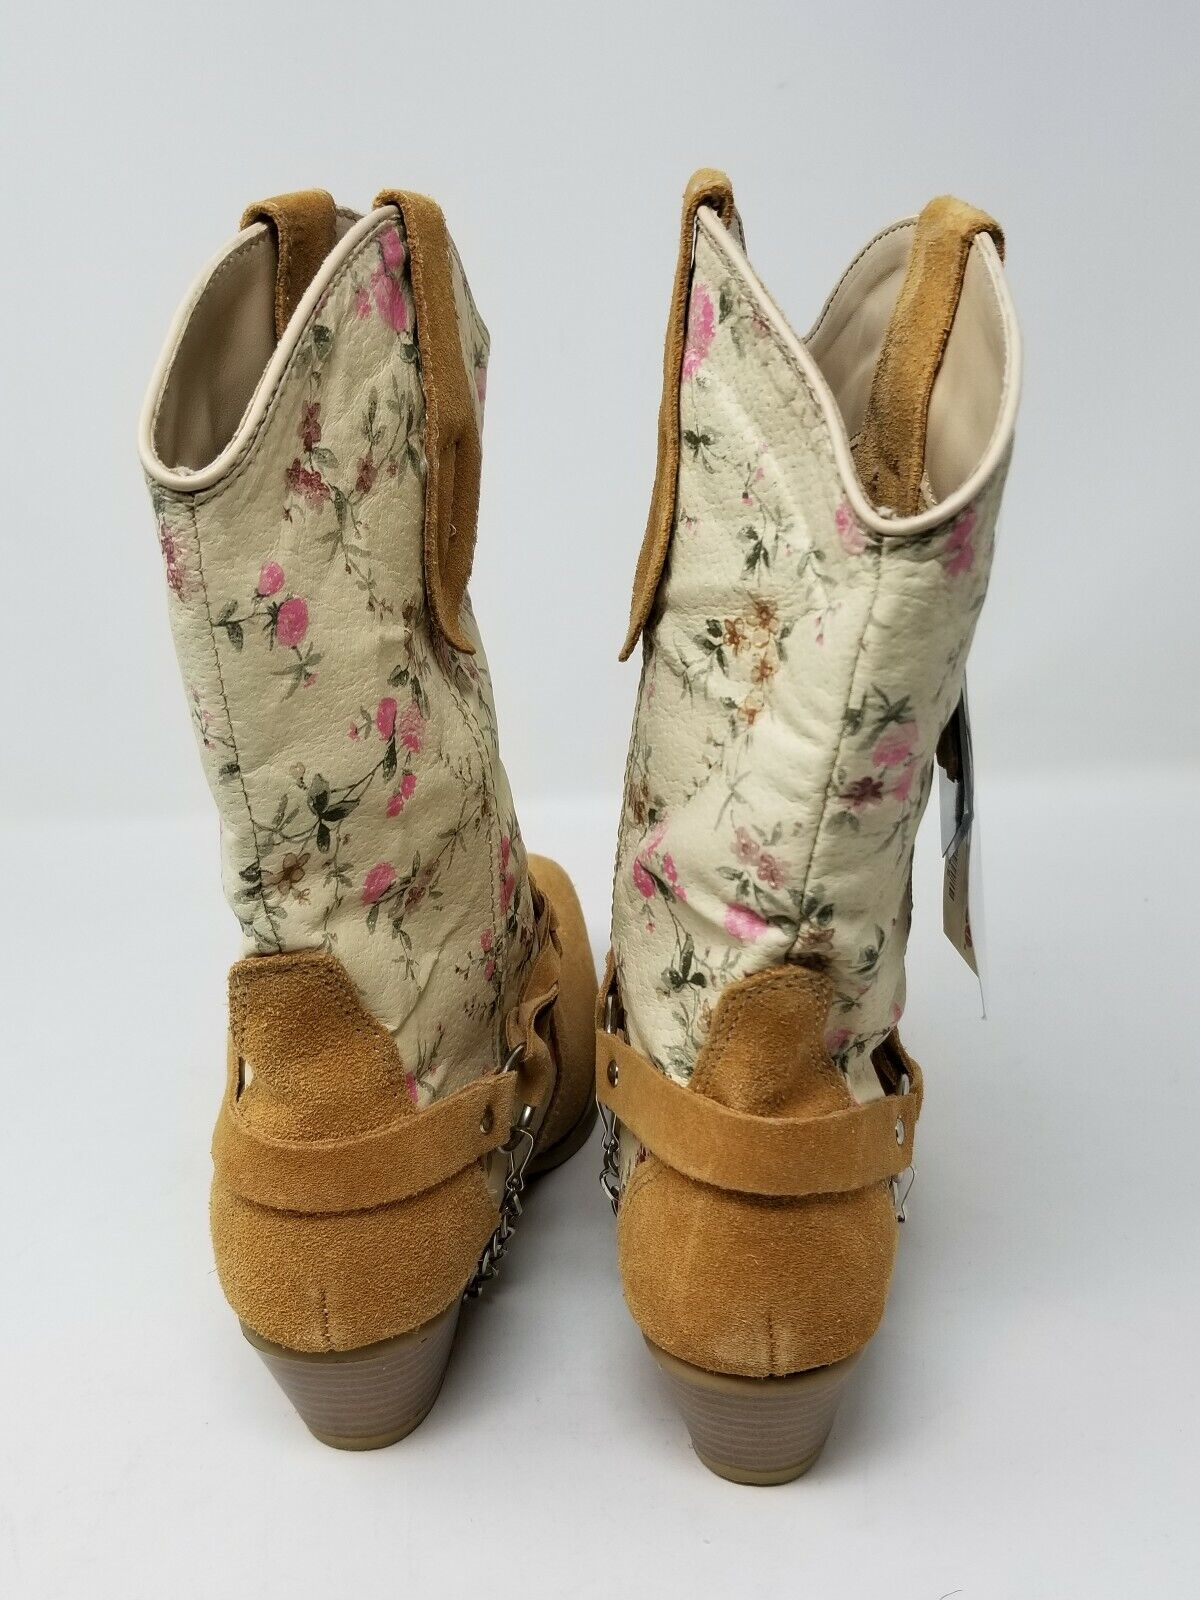 Santa Santa Santa Fe Women's Western Boot - Suede And Floral Leather - 7M 6a6134